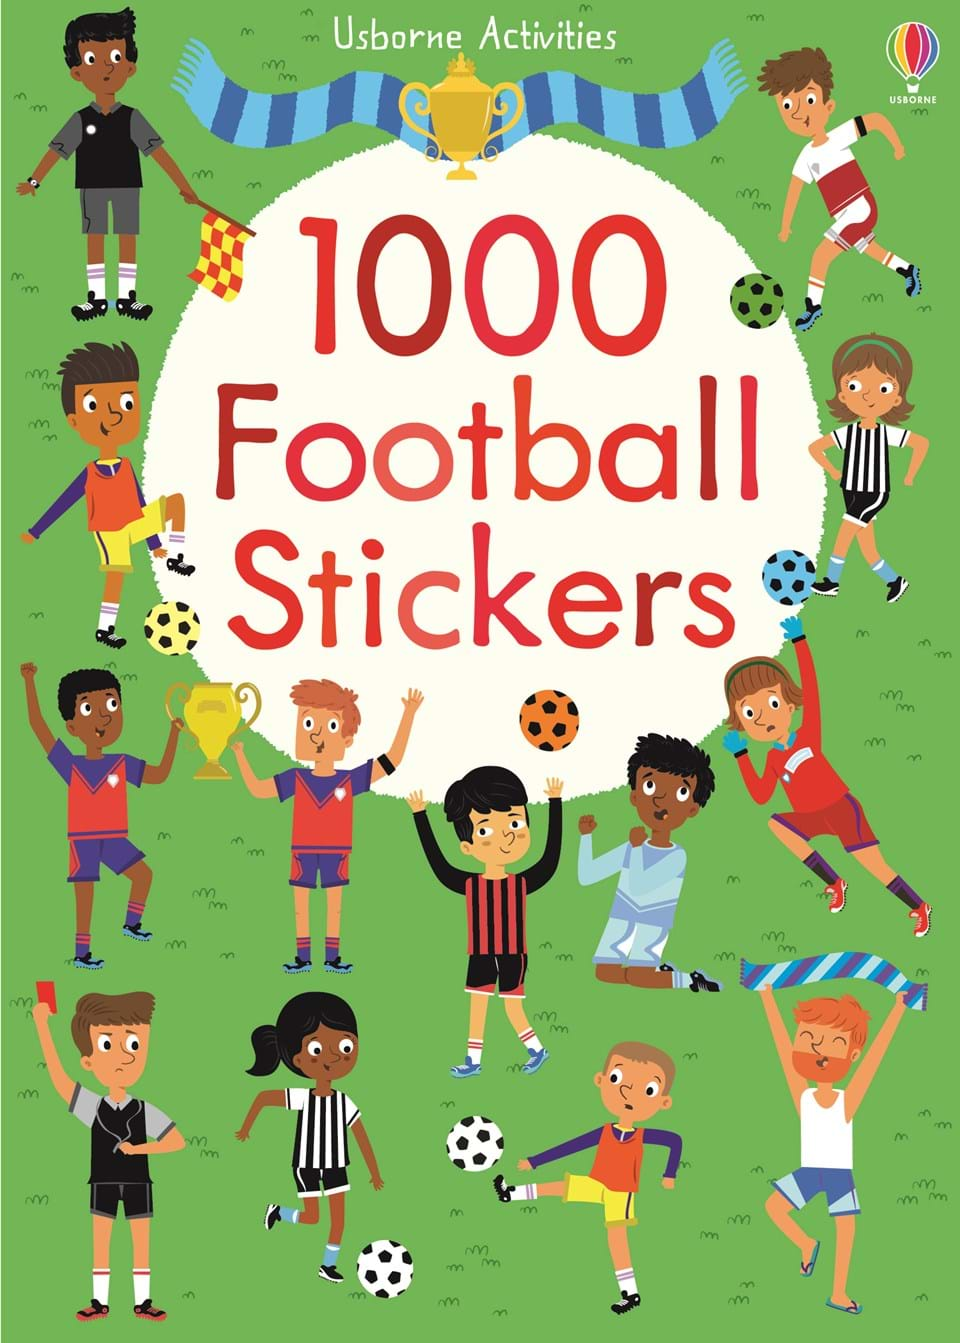 """1000 Football Stickers"" At Usborne Children's Books"